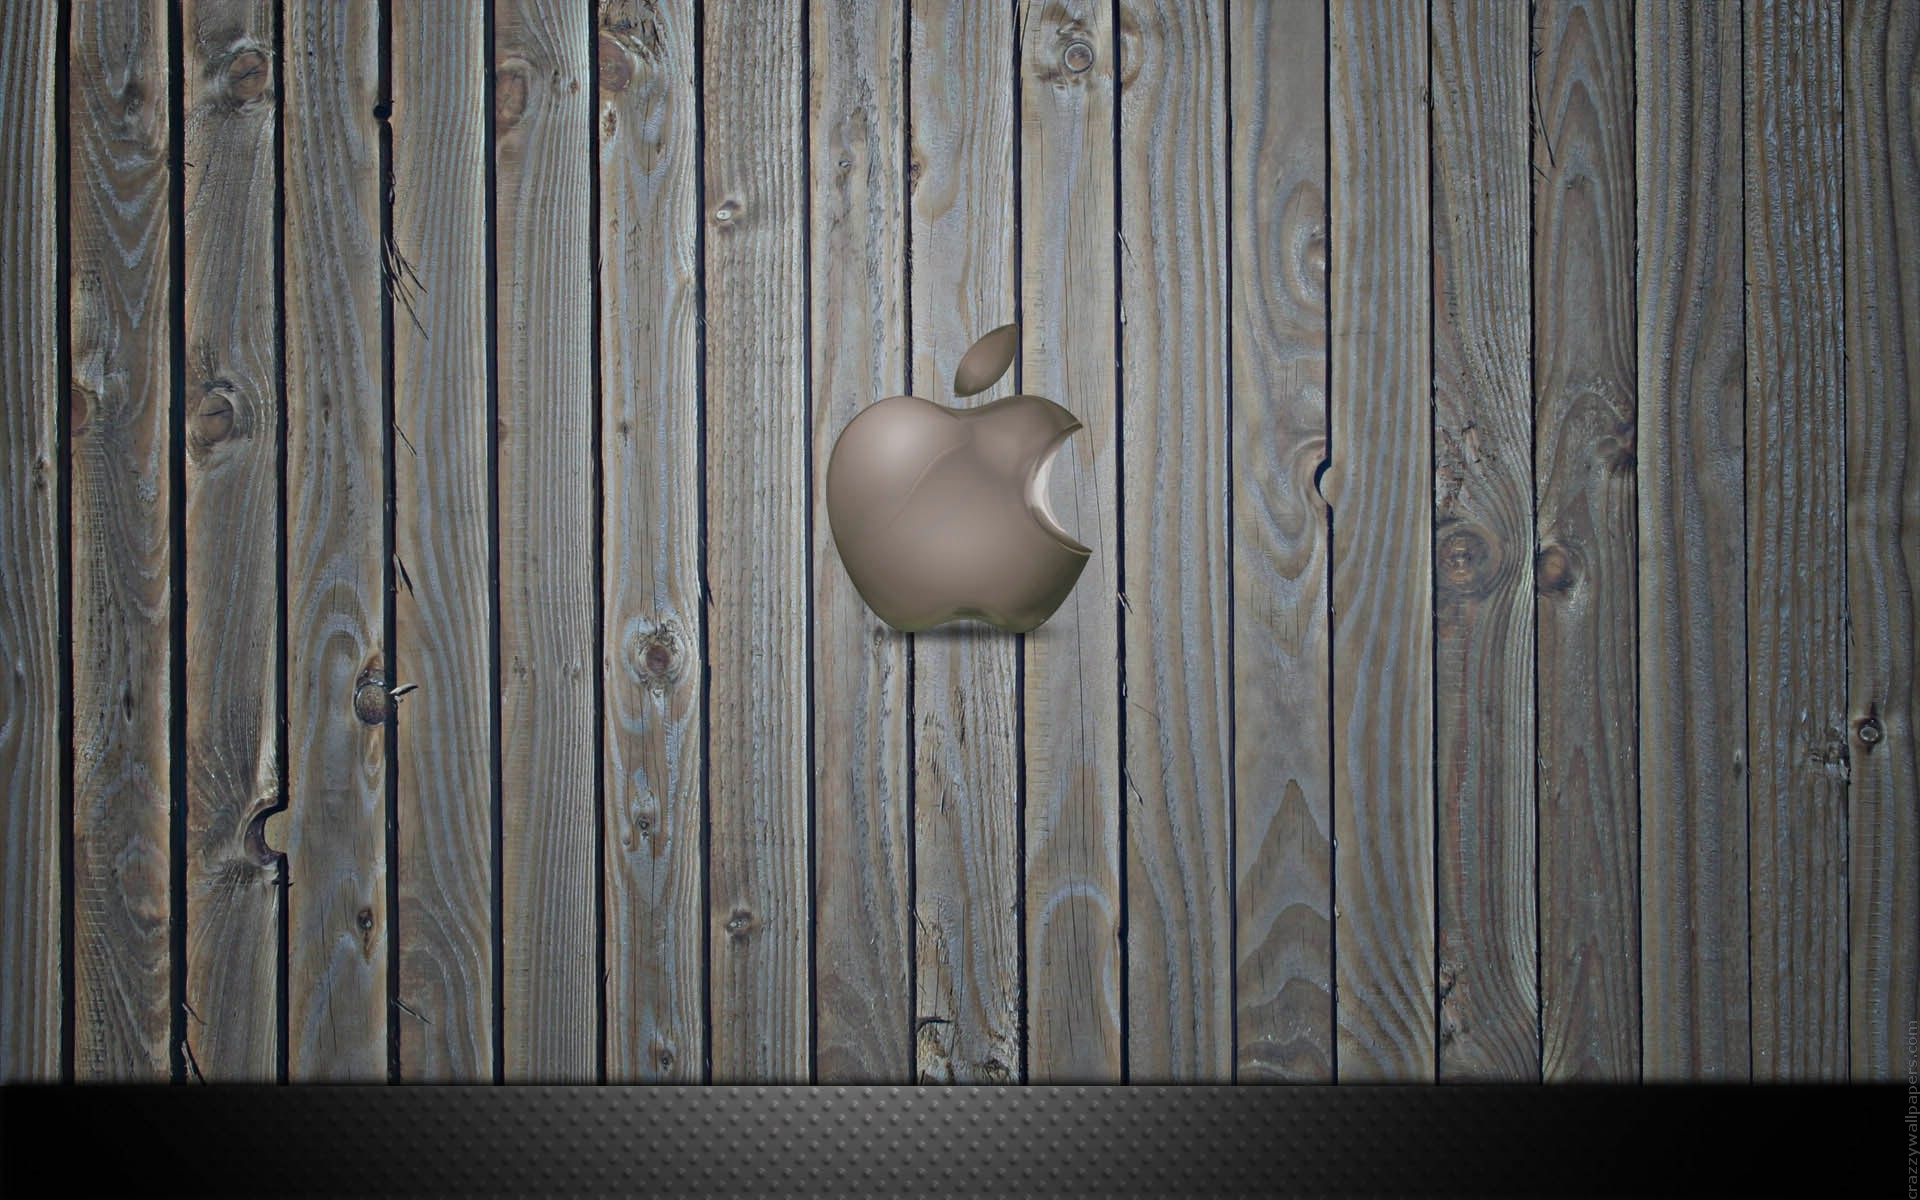 APPLE-and-MACOSX-think-different-free-wallpaper-wood